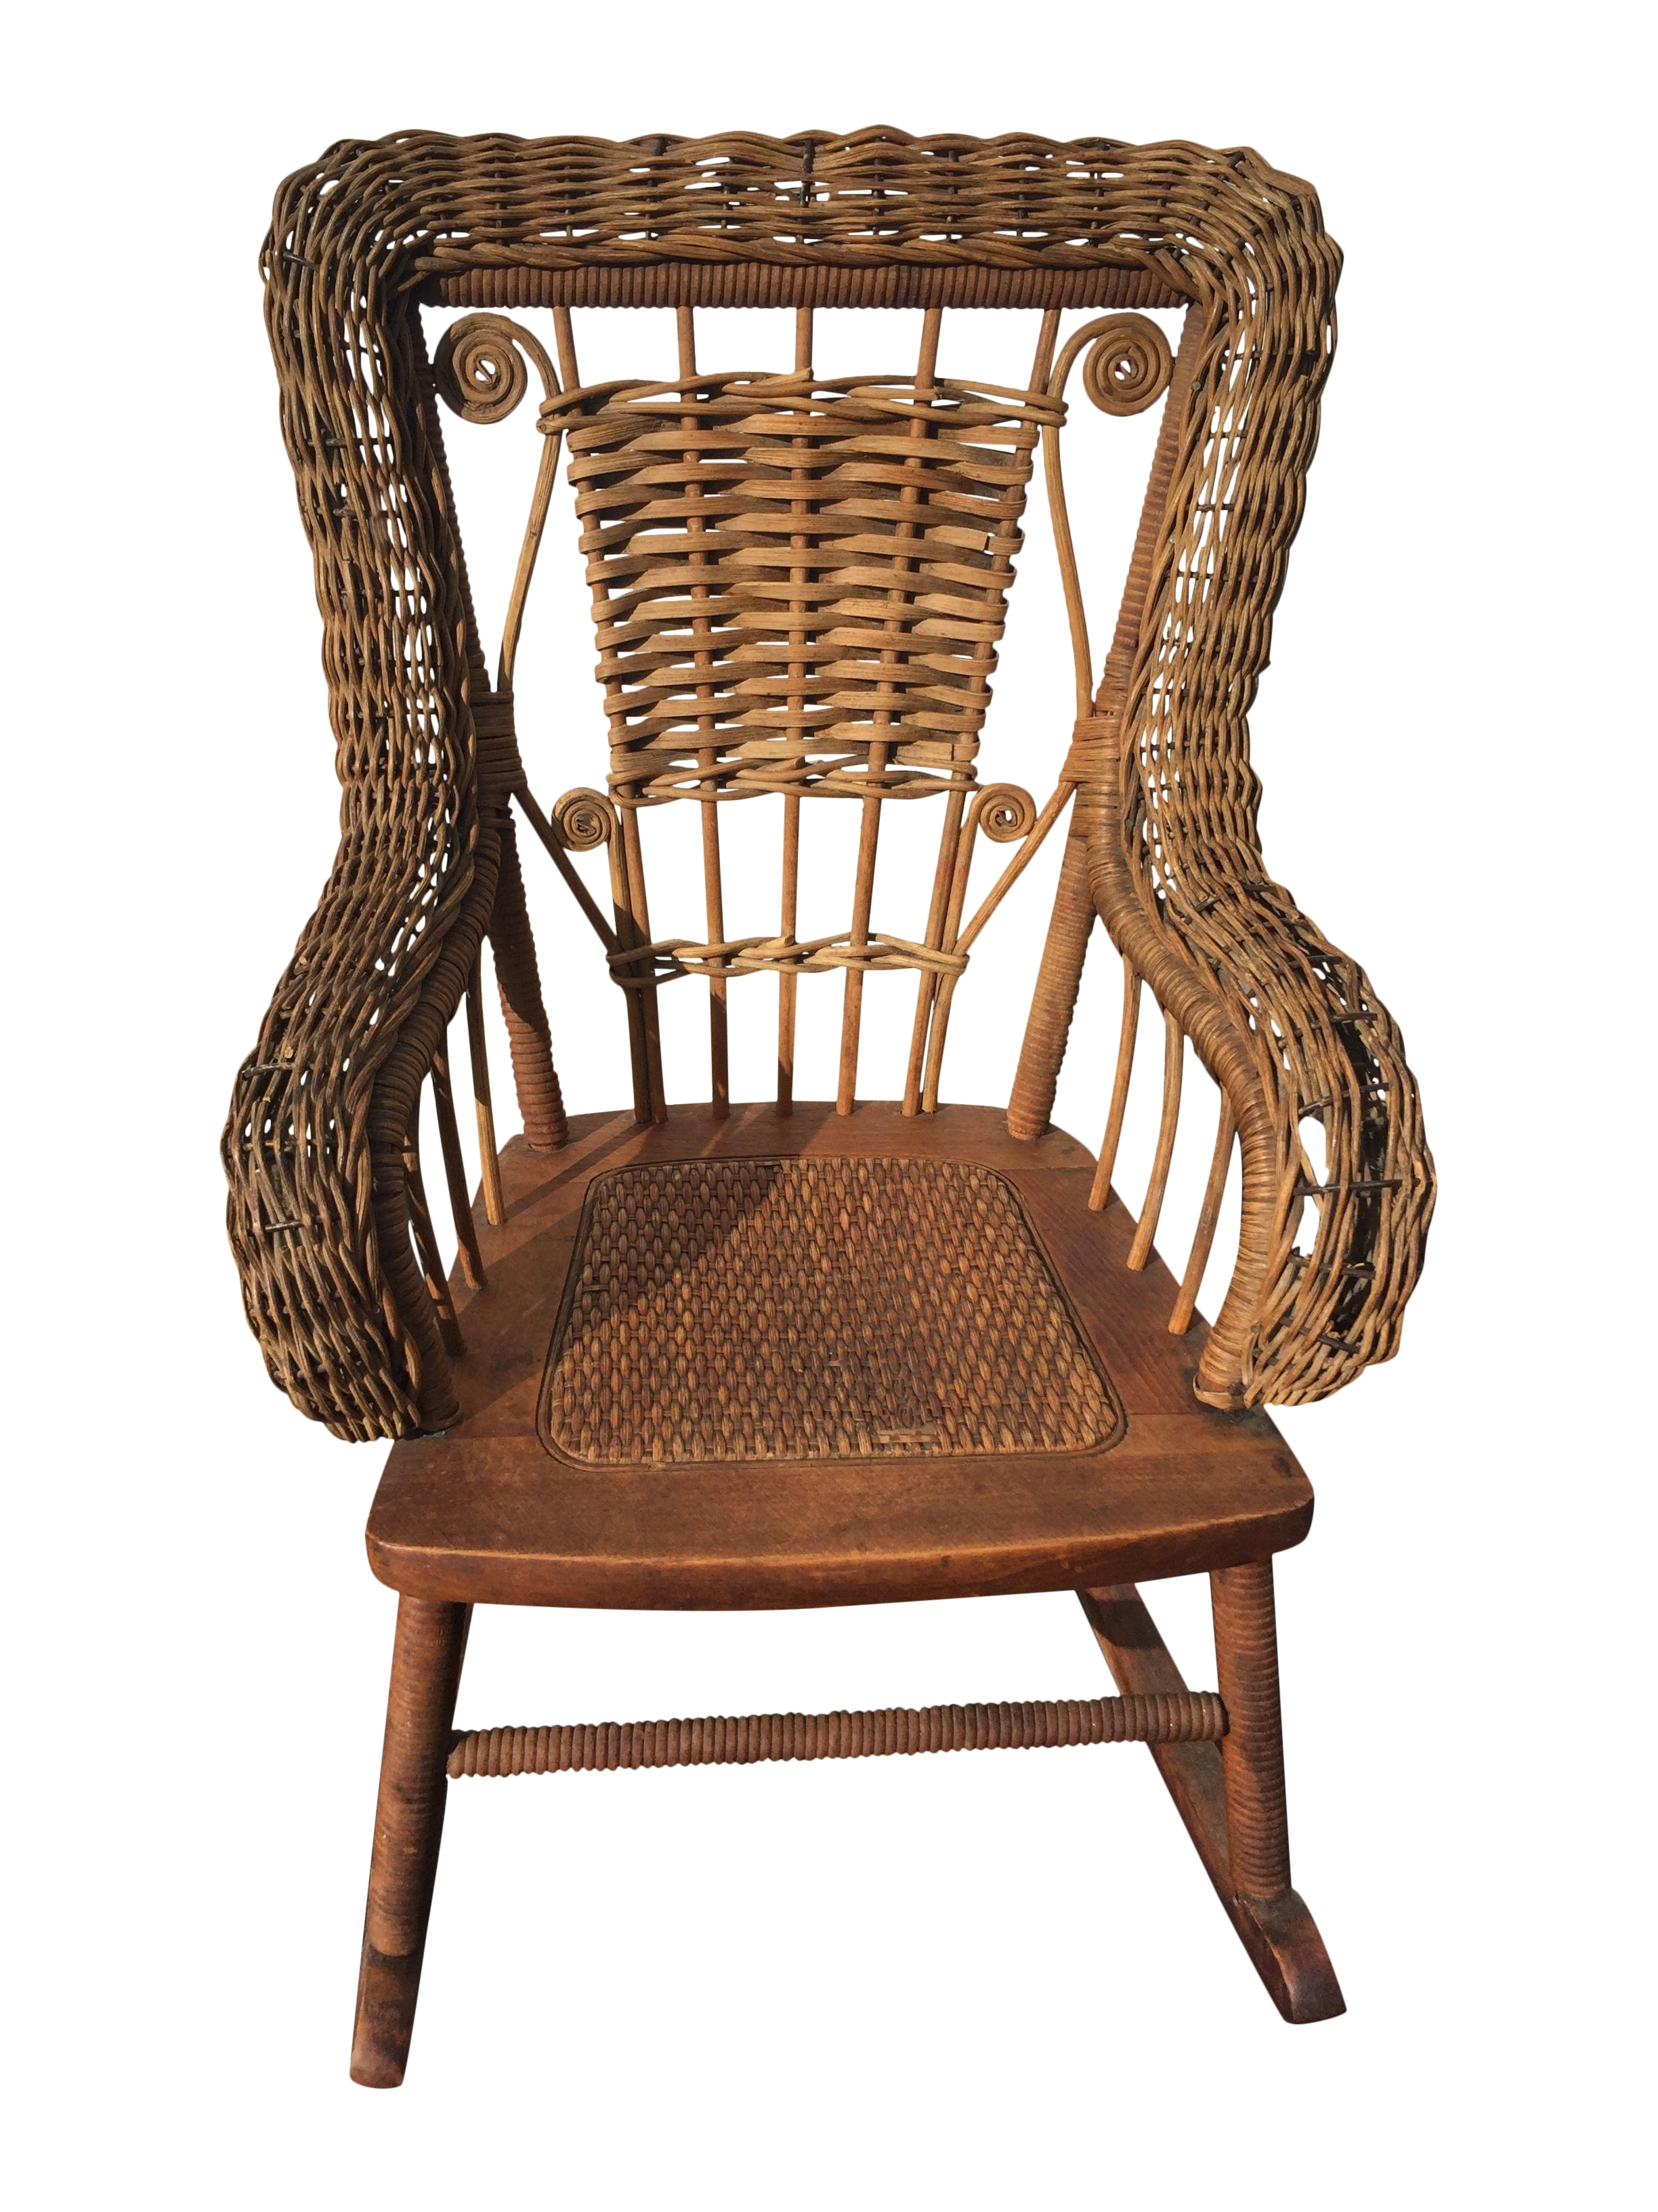 2017 Vintage Wicker Rocking Chairs Intended For Antique Childrens Wicker Spindle Rocking Chair Chairish Childs Uk (View 2 of 15)